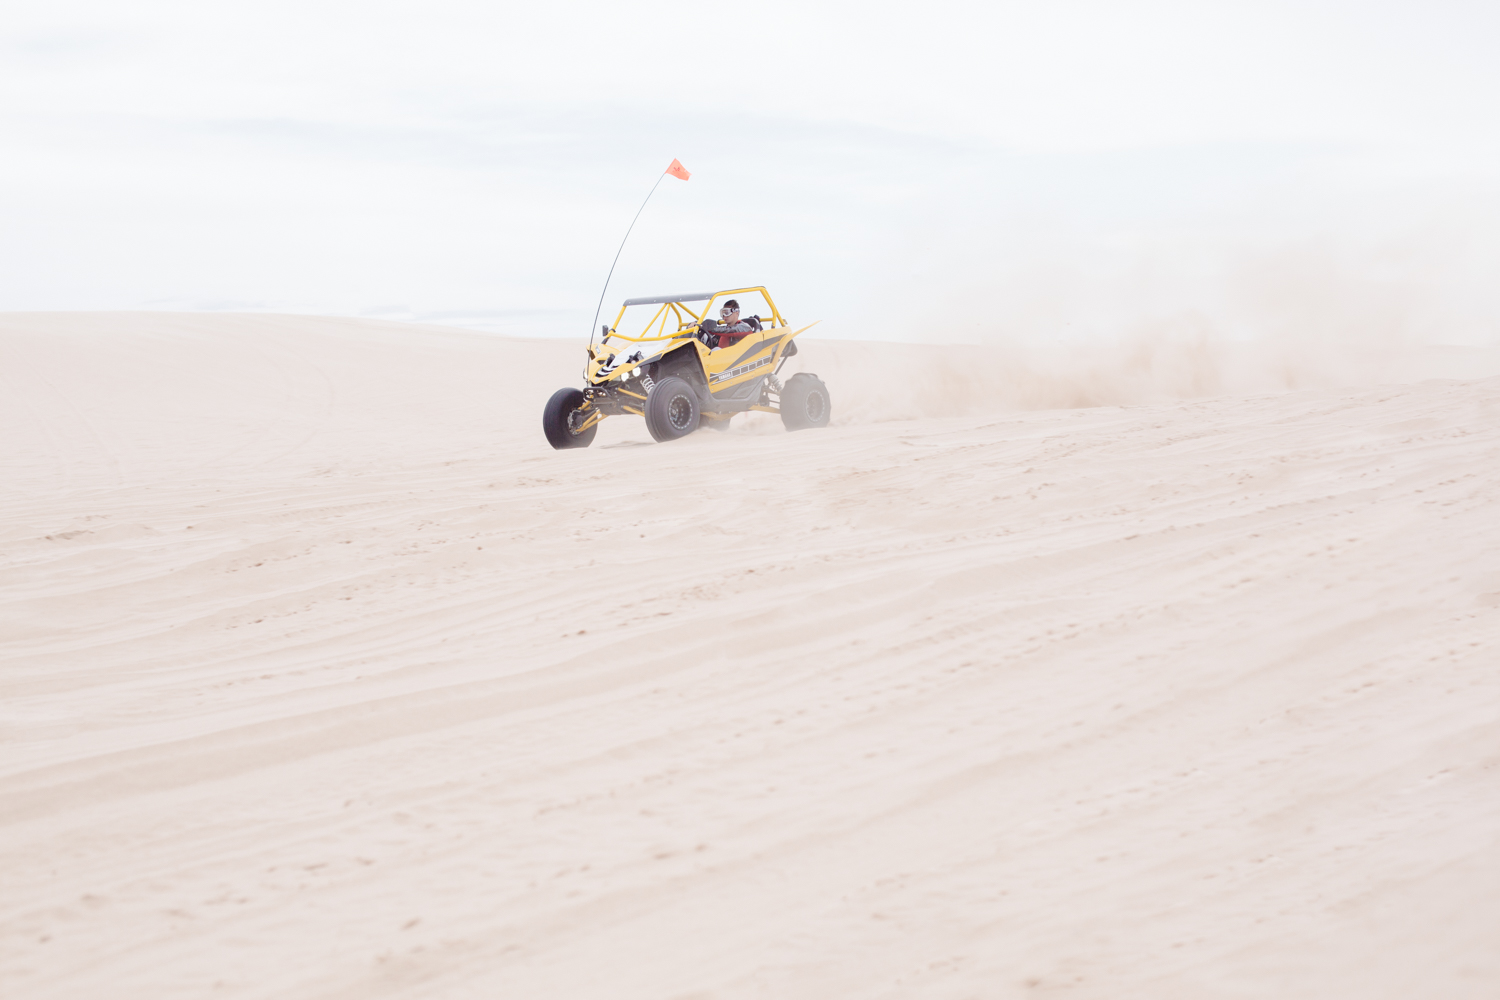 dune-buggy-in-the-sand-dunes